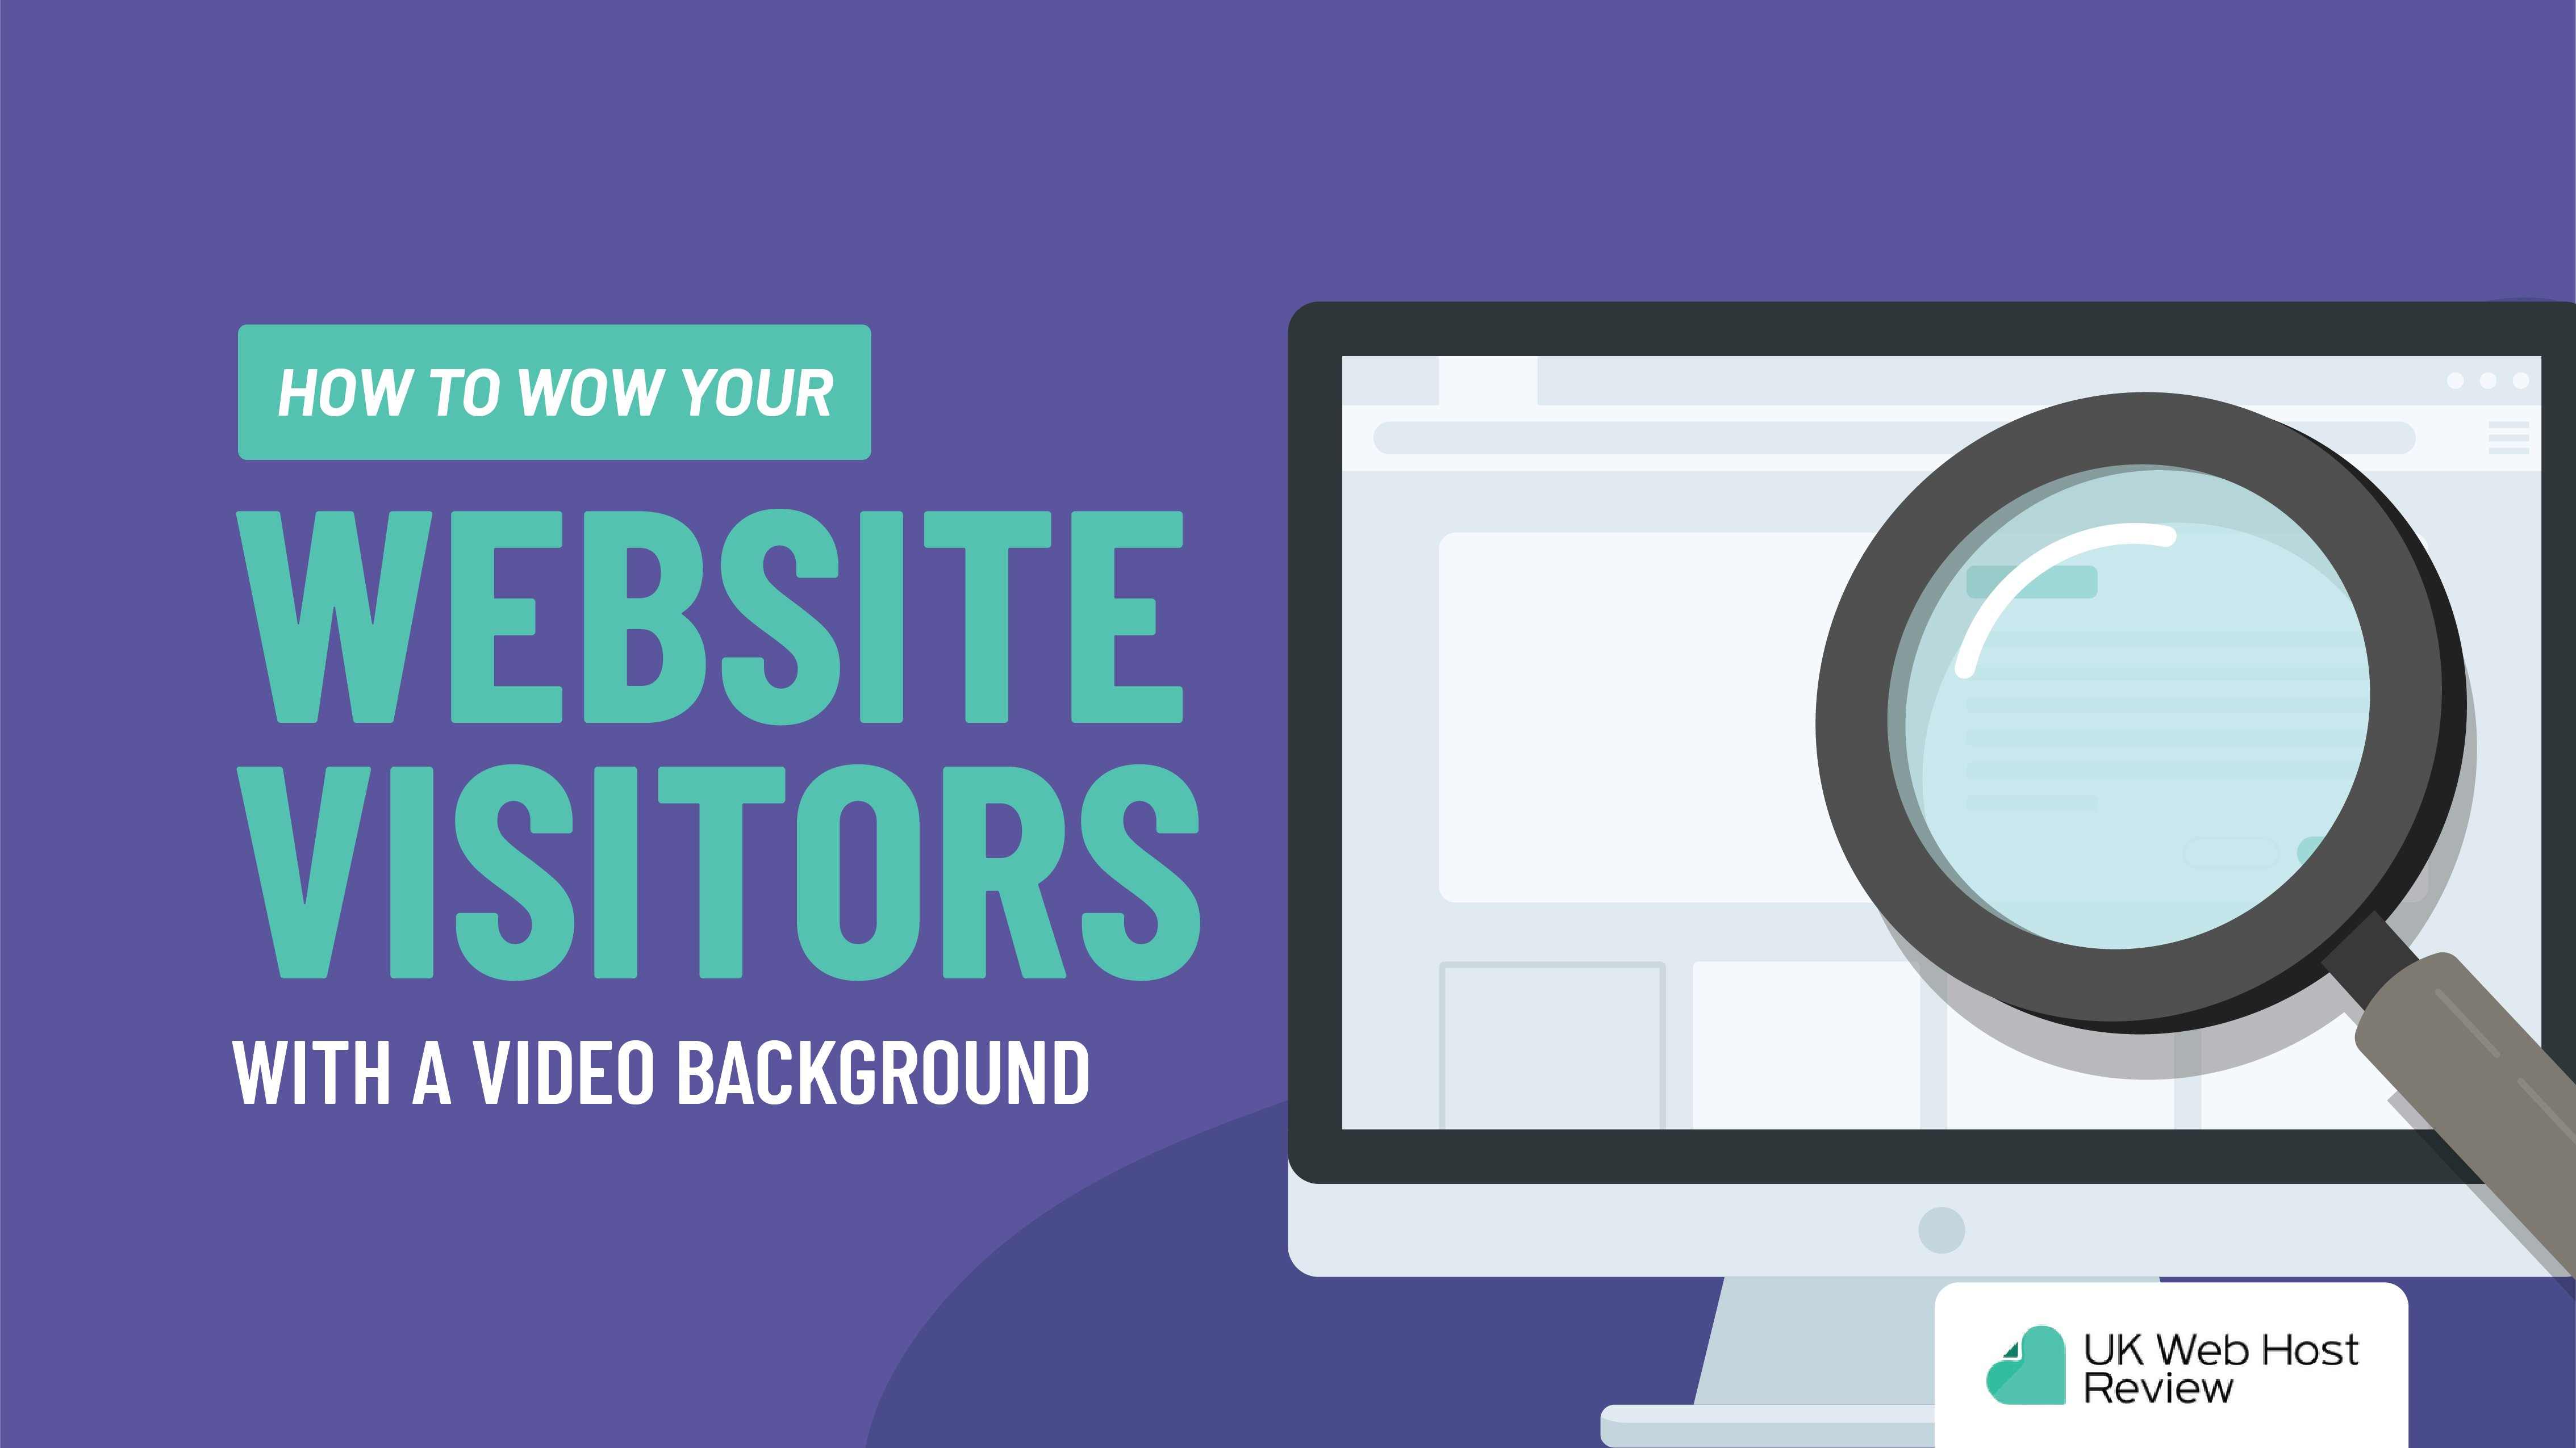 How to Wow Your Website Visitors with a Video Background